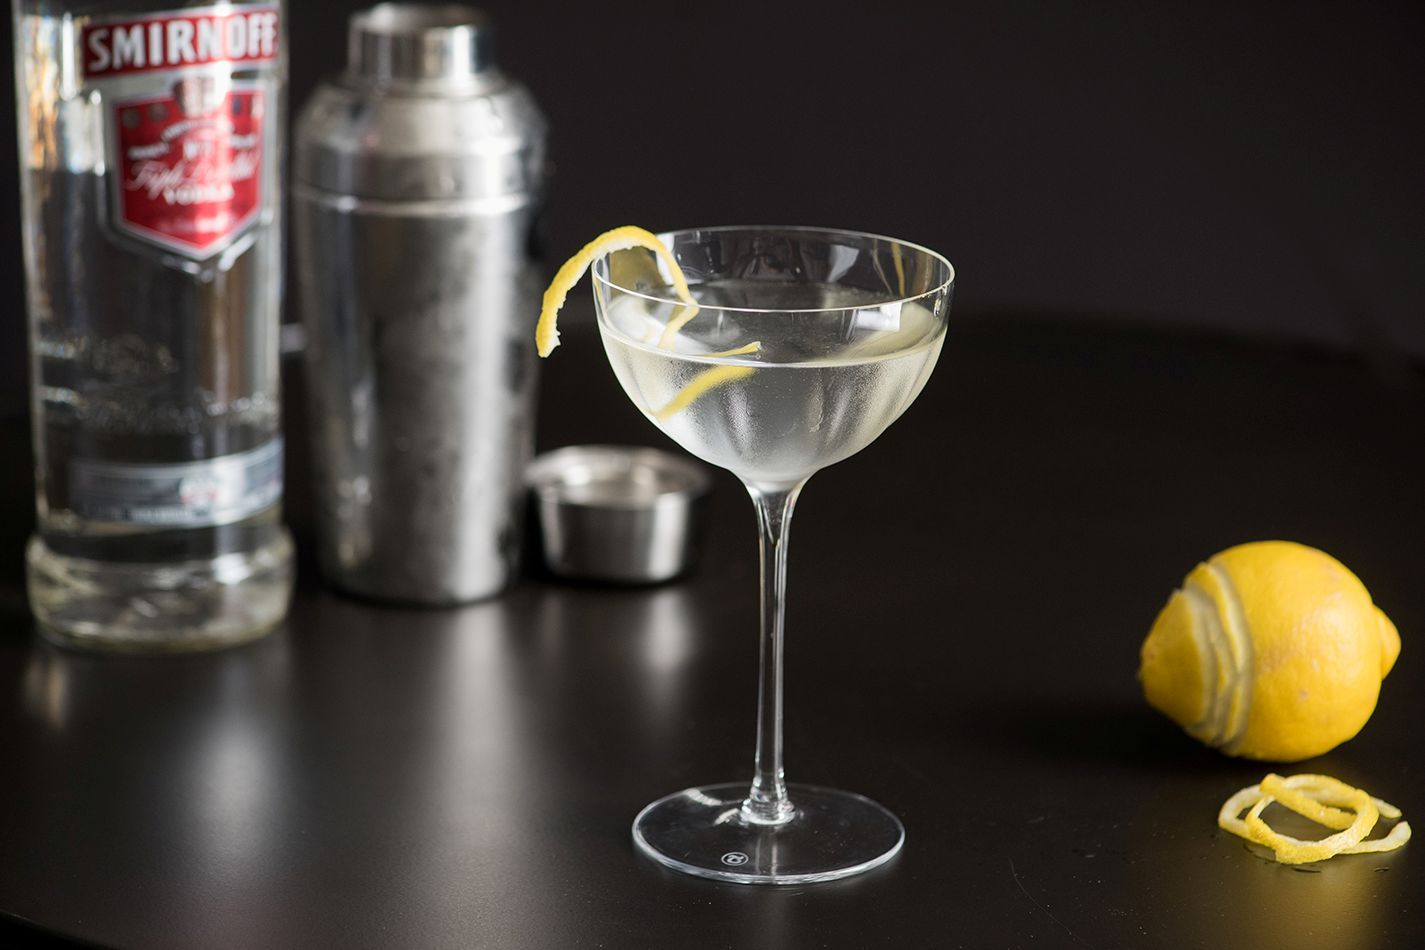 Smirnoff vodka drinks tobacco gambling pinterest smirnoff bone dry crystal clear and icy cold the martini cocktail is the ultimate classic cocktail enjoyed by everyone from clark gable and bette davis to audrey sisterspd